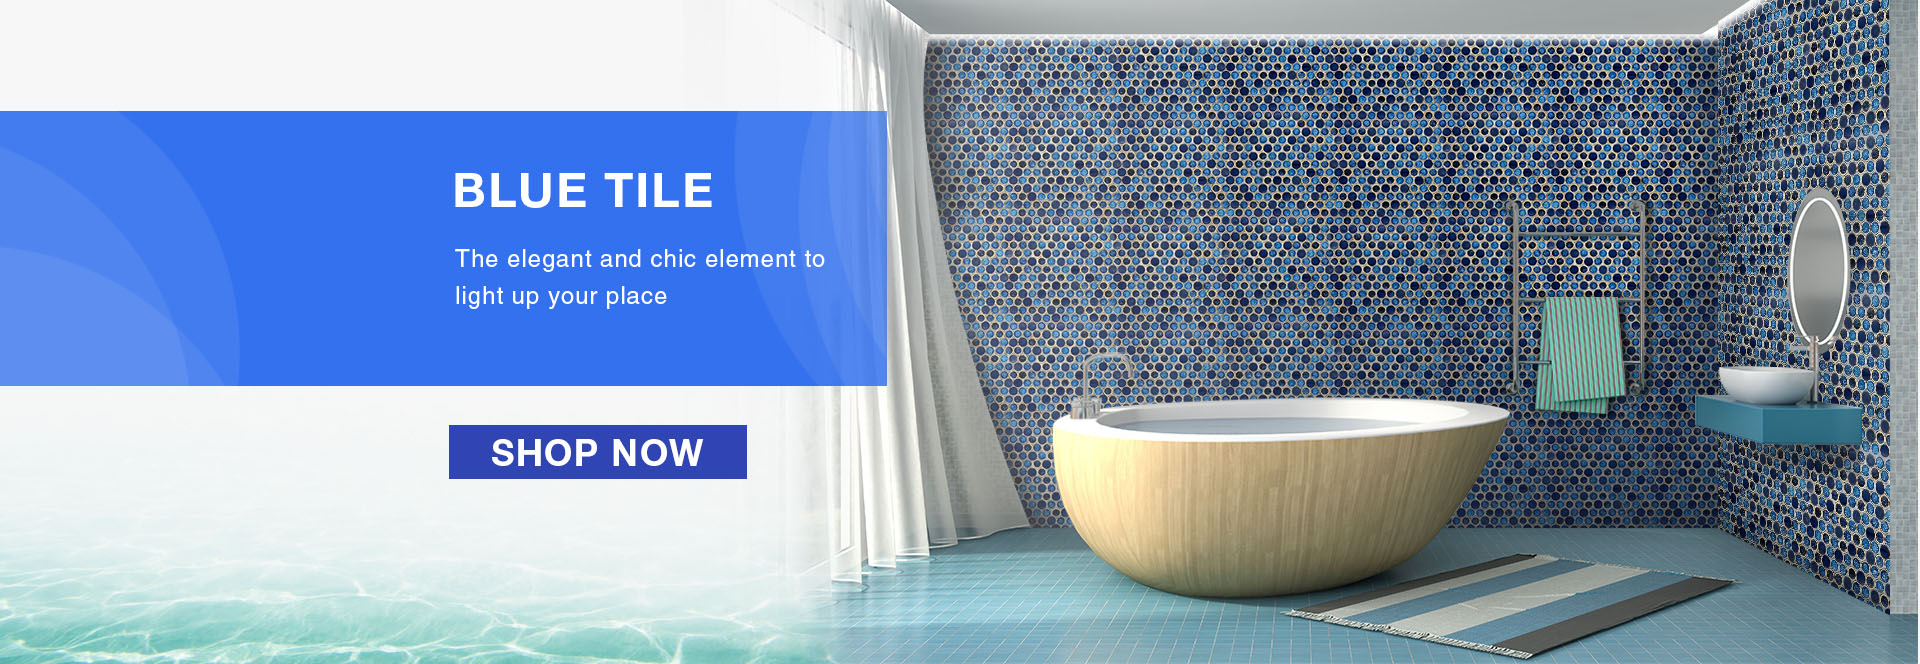 Chic Blue Tile collection